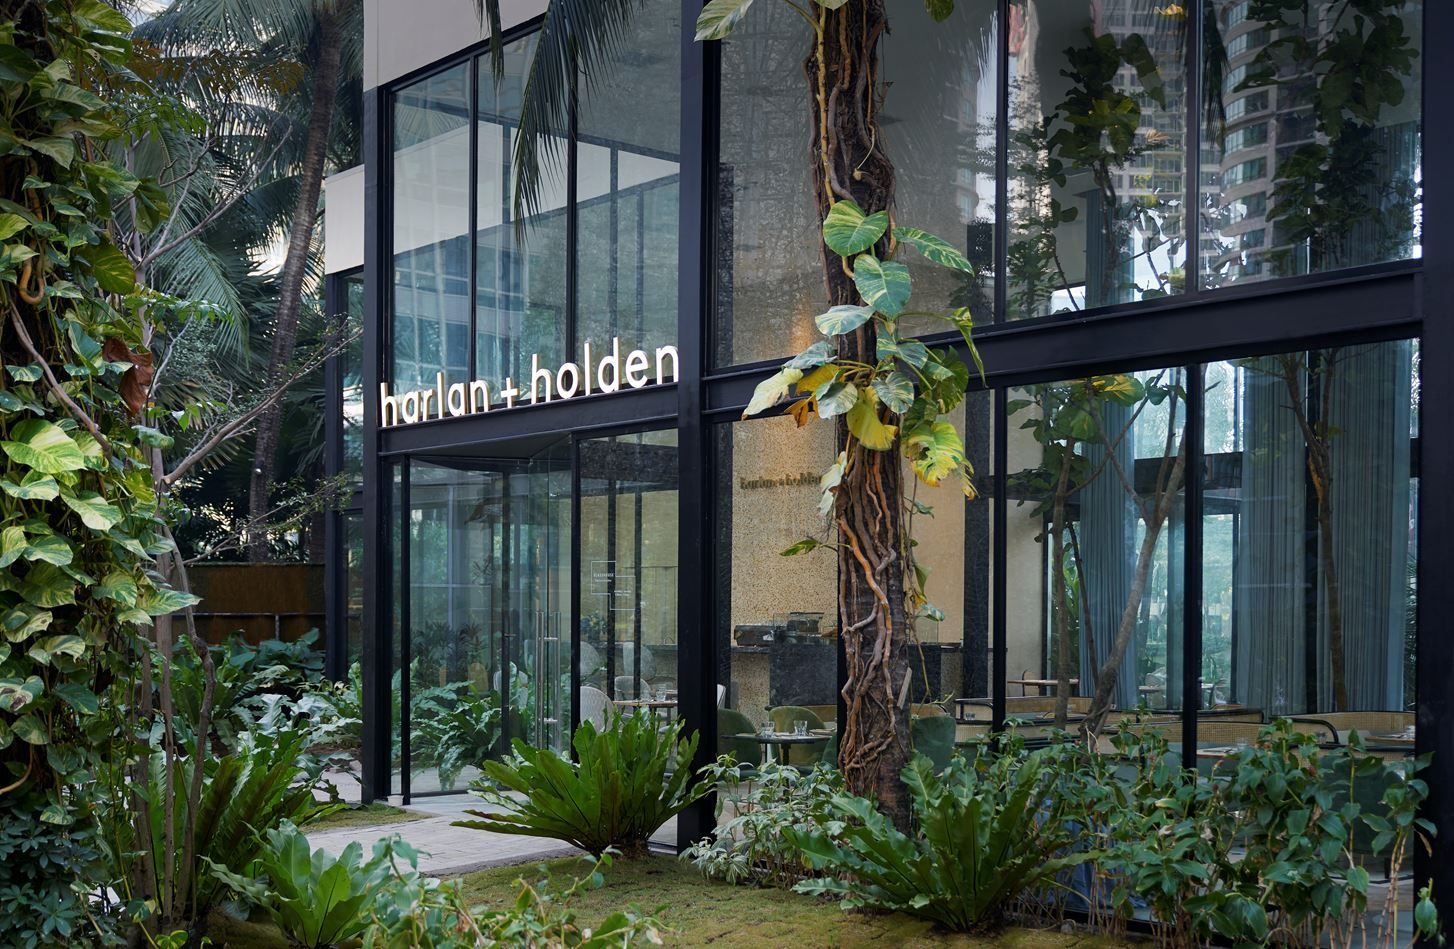 Harlan+Holden Glasshouse Café Picture gallery